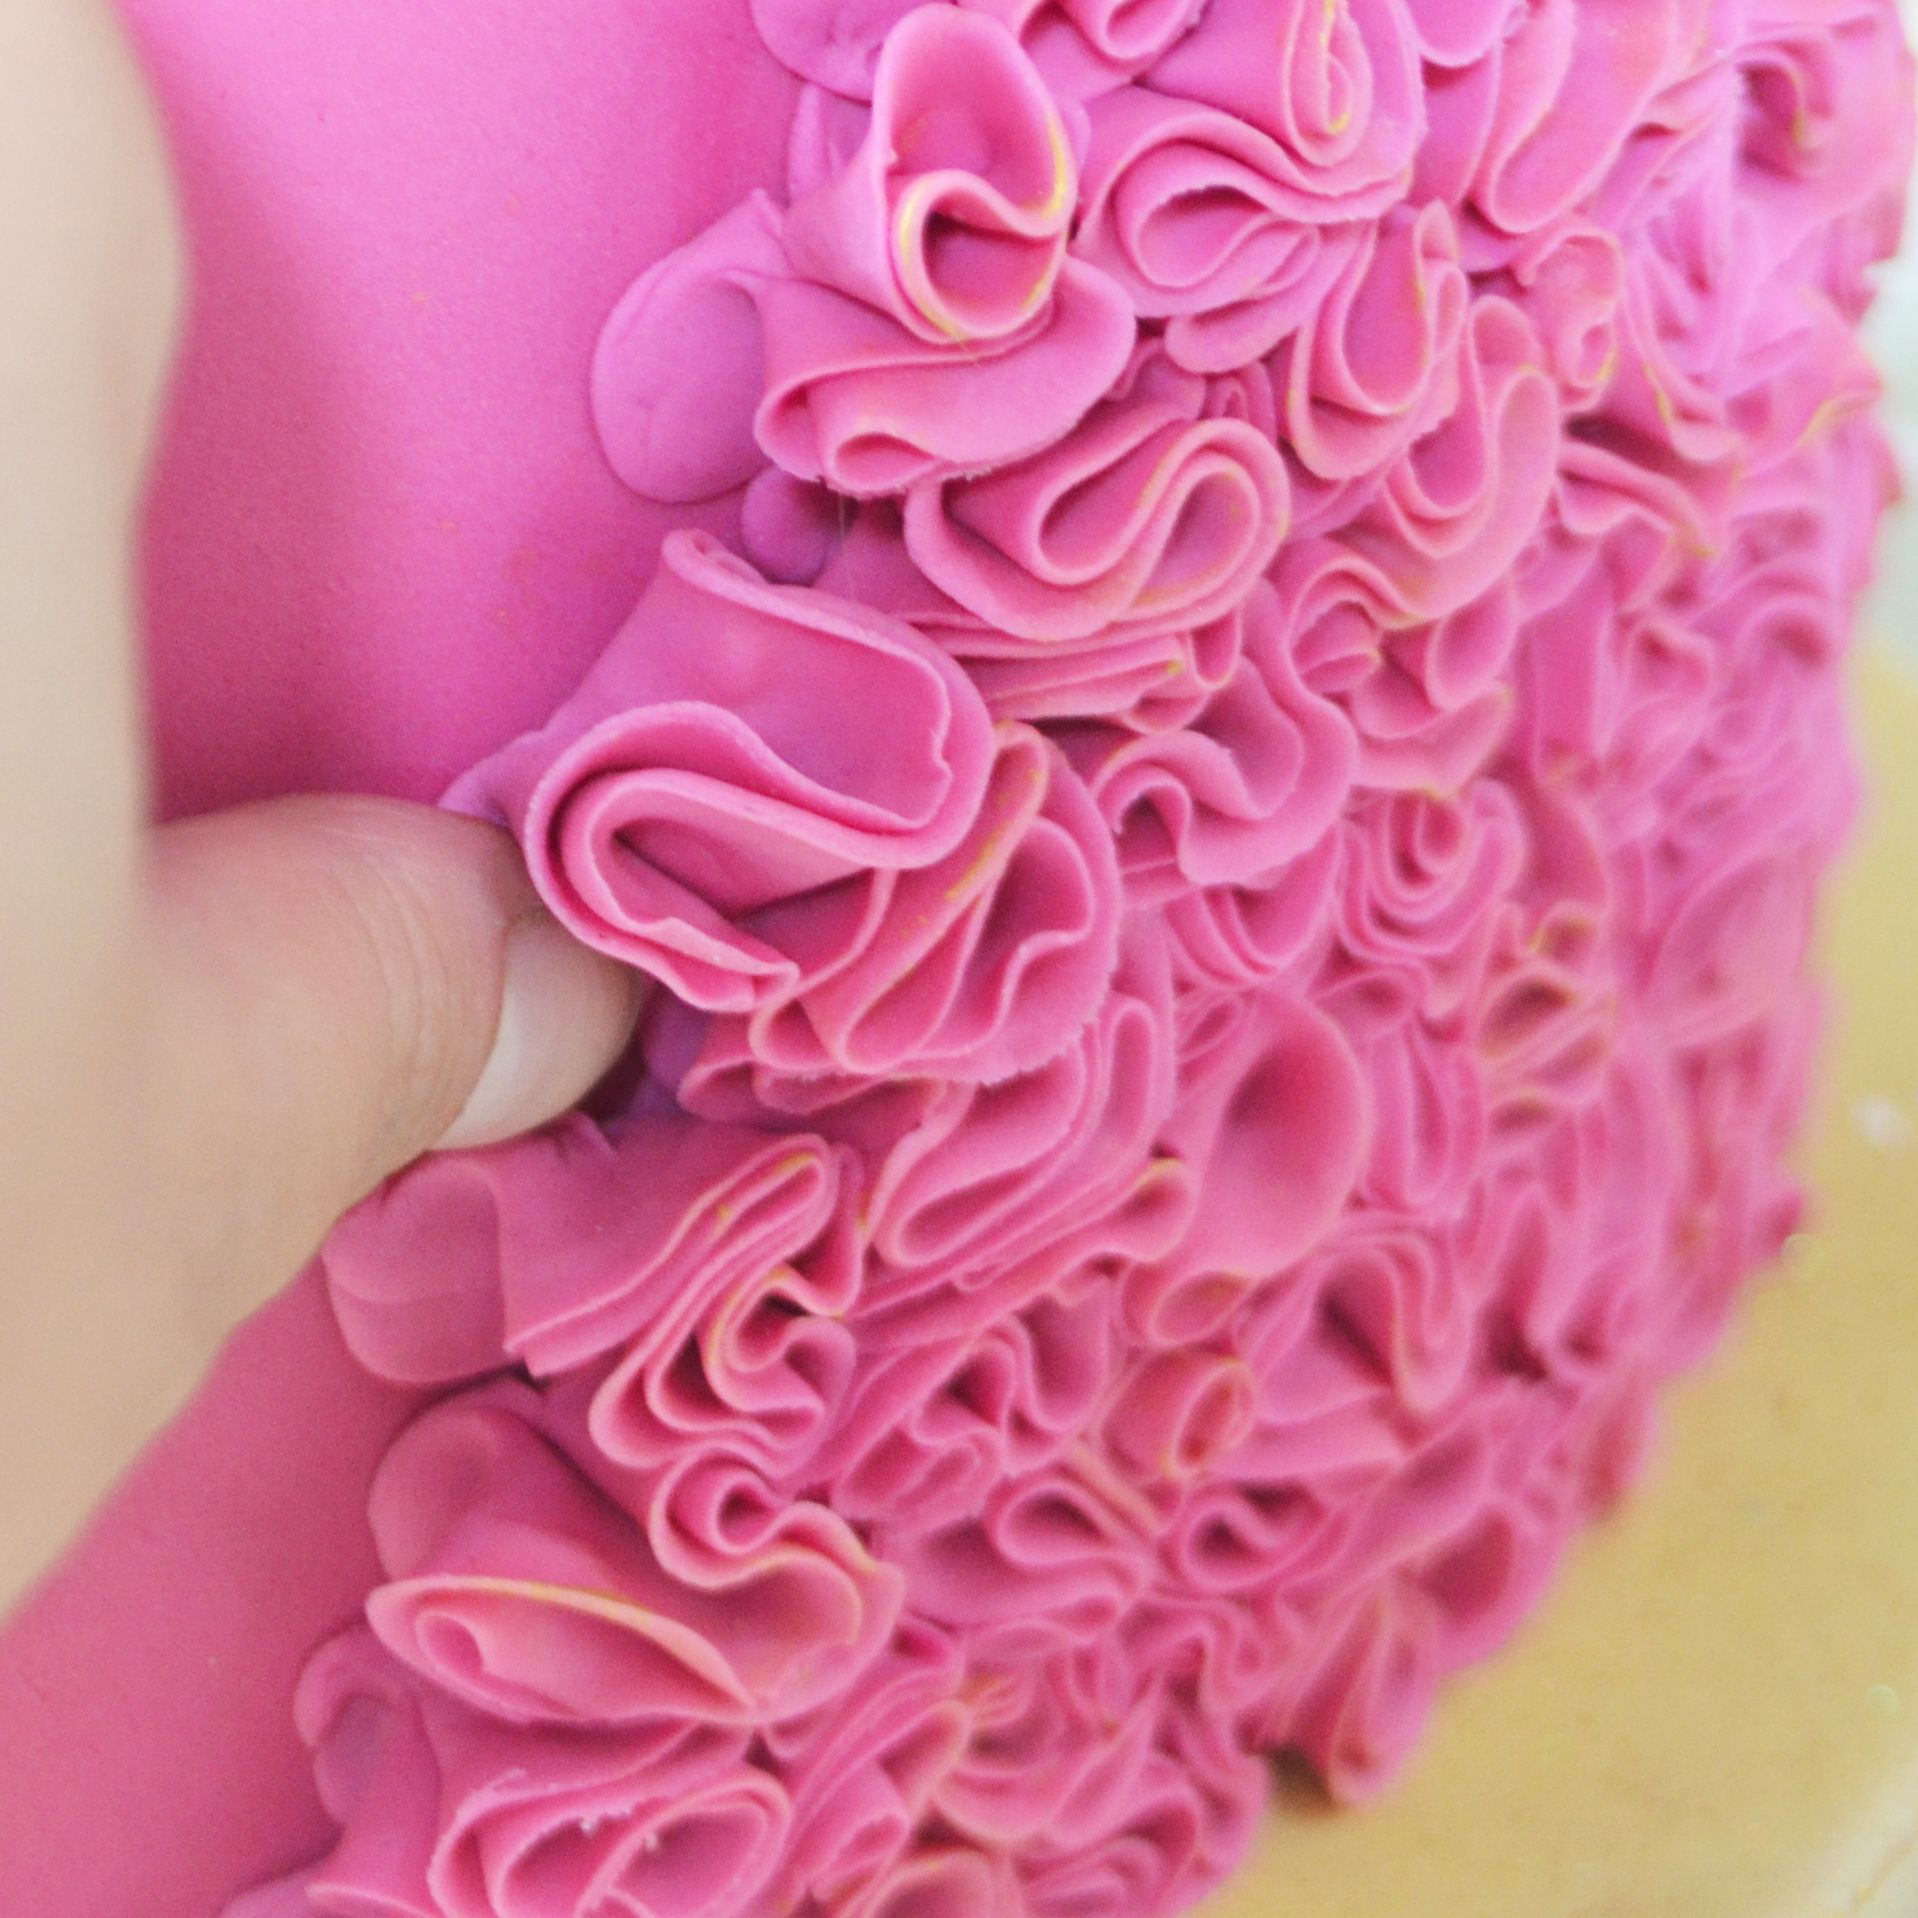 How To Make A Two Story Living Room Cozy: How To Make Easy Fondant Ruffles